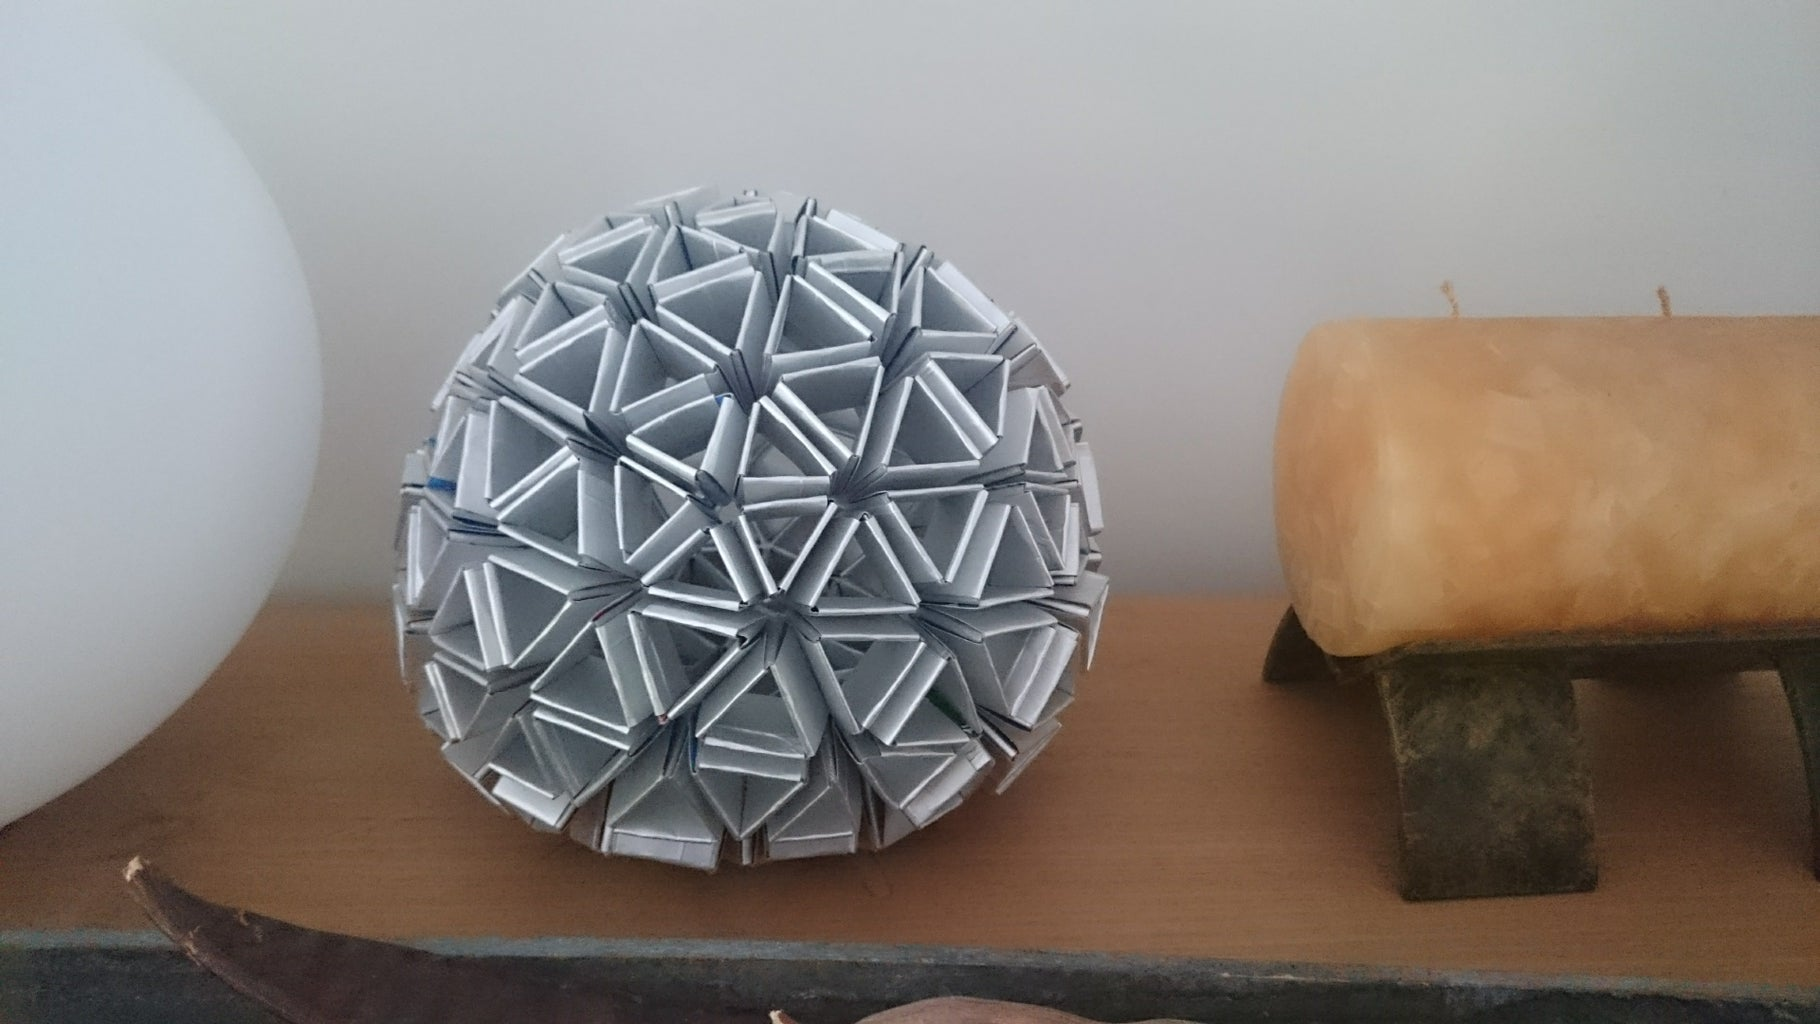 Silver Sphere (from Milk Cartons)